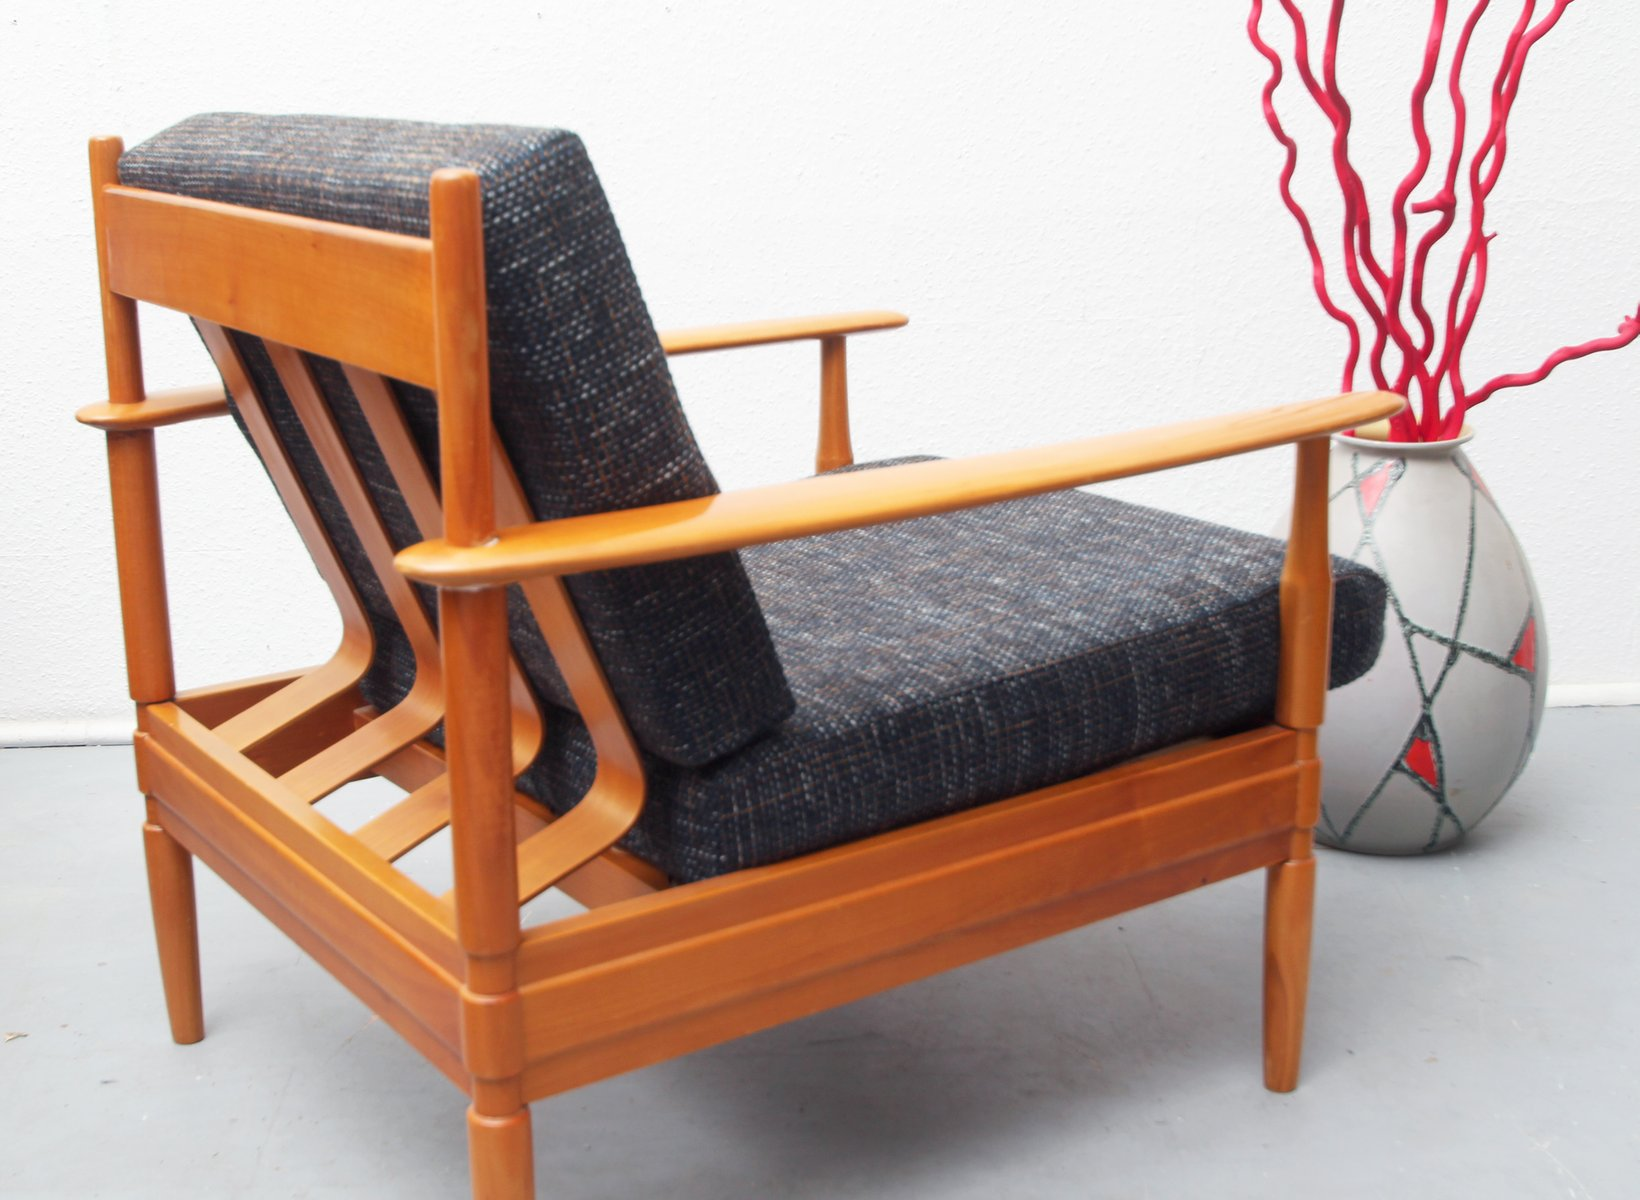 Merveilleux German Cherry Wood Lounge Chair, 1960s